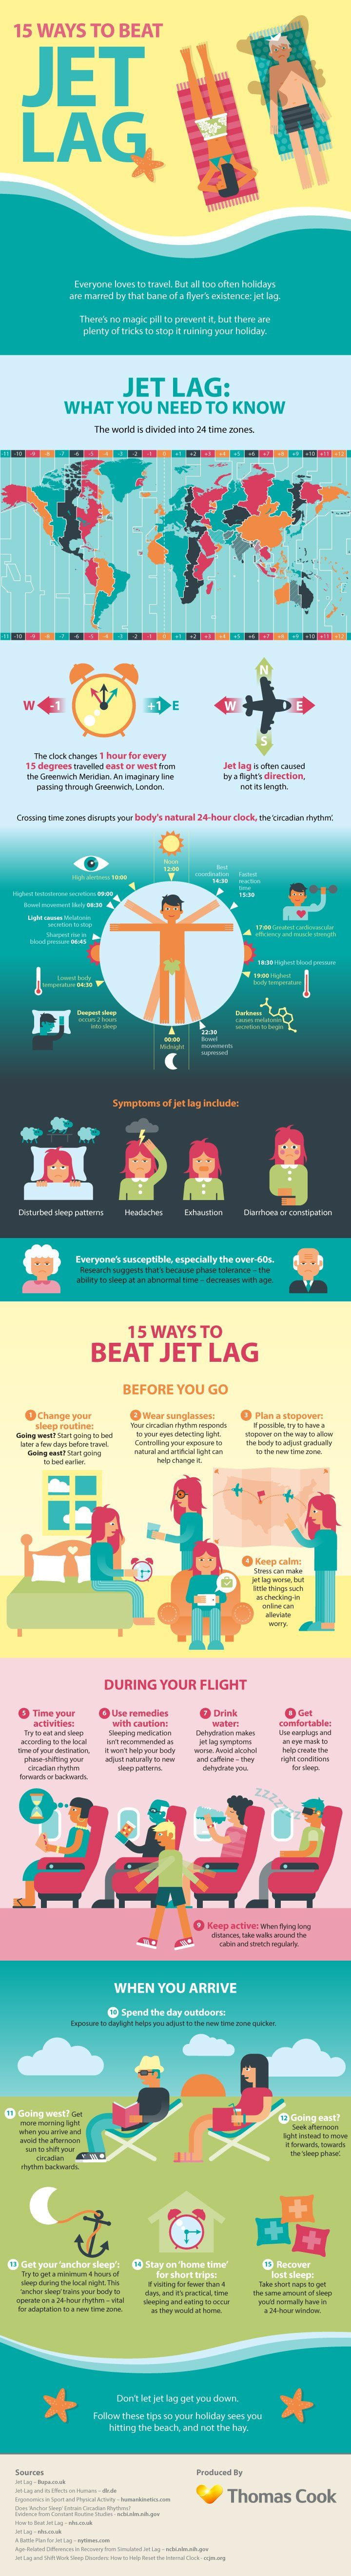 Traveling across time zones brings people to faraway destinations, but there's one huge downside: jet lag. Thomas Cook studied the phenomenon that leaves travelers exhausted and came up with an infographic that shows the best ways to beat jet lag. Some useful tips include wearing sunglasses to trick your body into thinking it's night, drinking water to stay hydrated, and keeping active. Compare hotel room prices for your destination at http://friendly-hotels.com